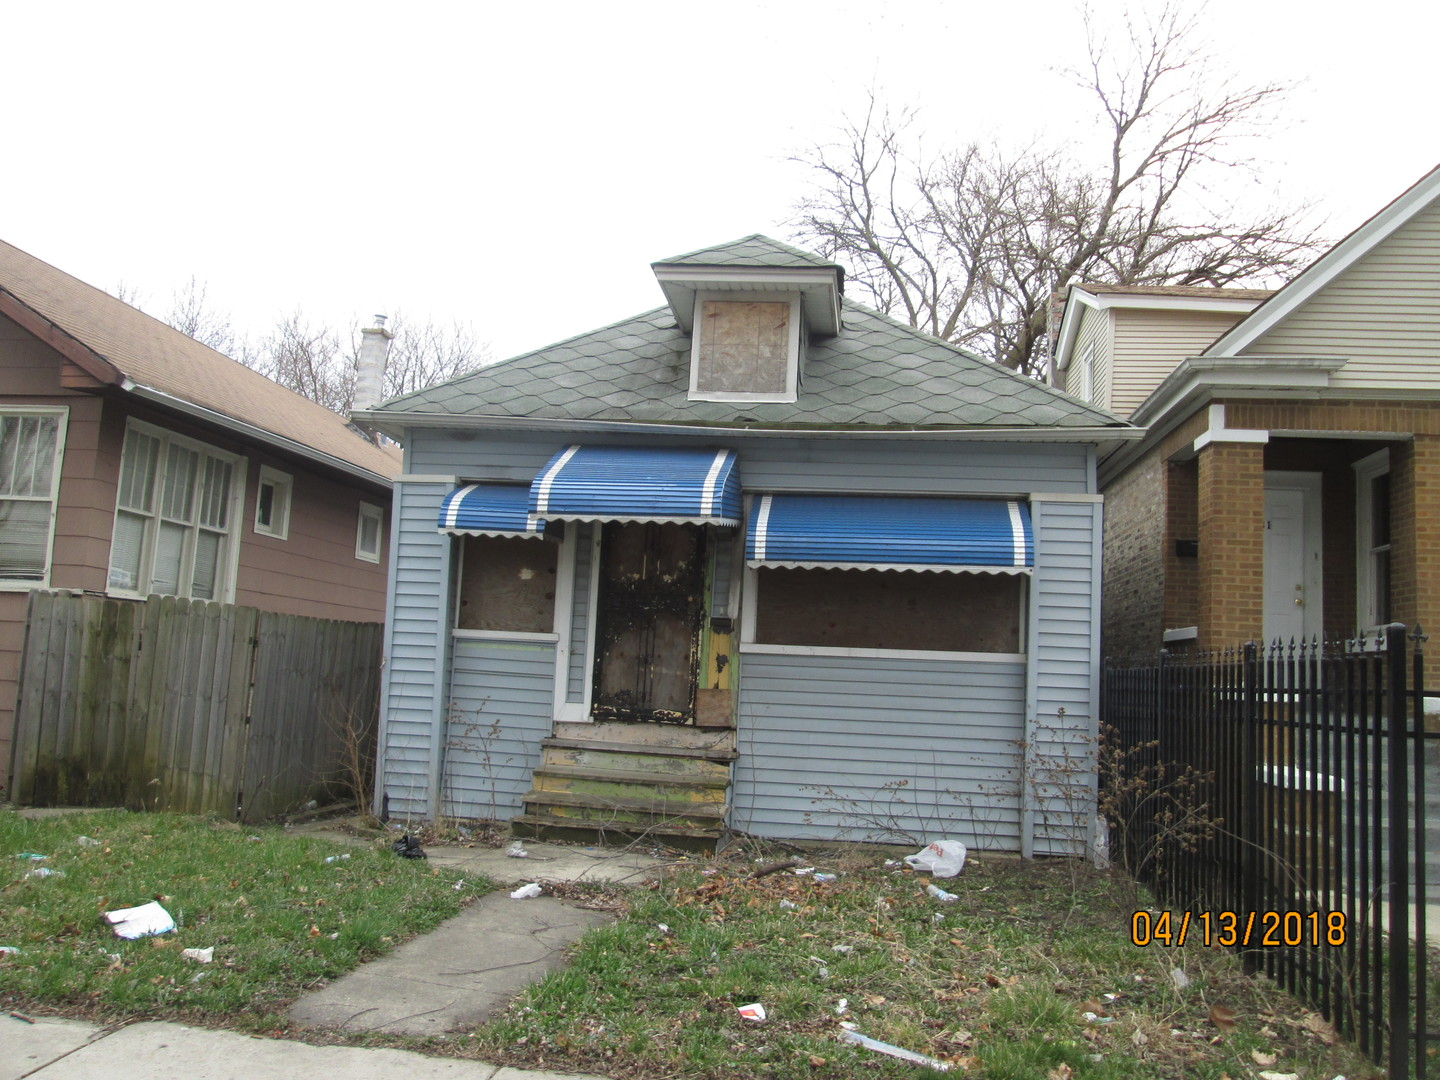 8529 South ABERDEEN, CHICAGO, Illinois, 60620